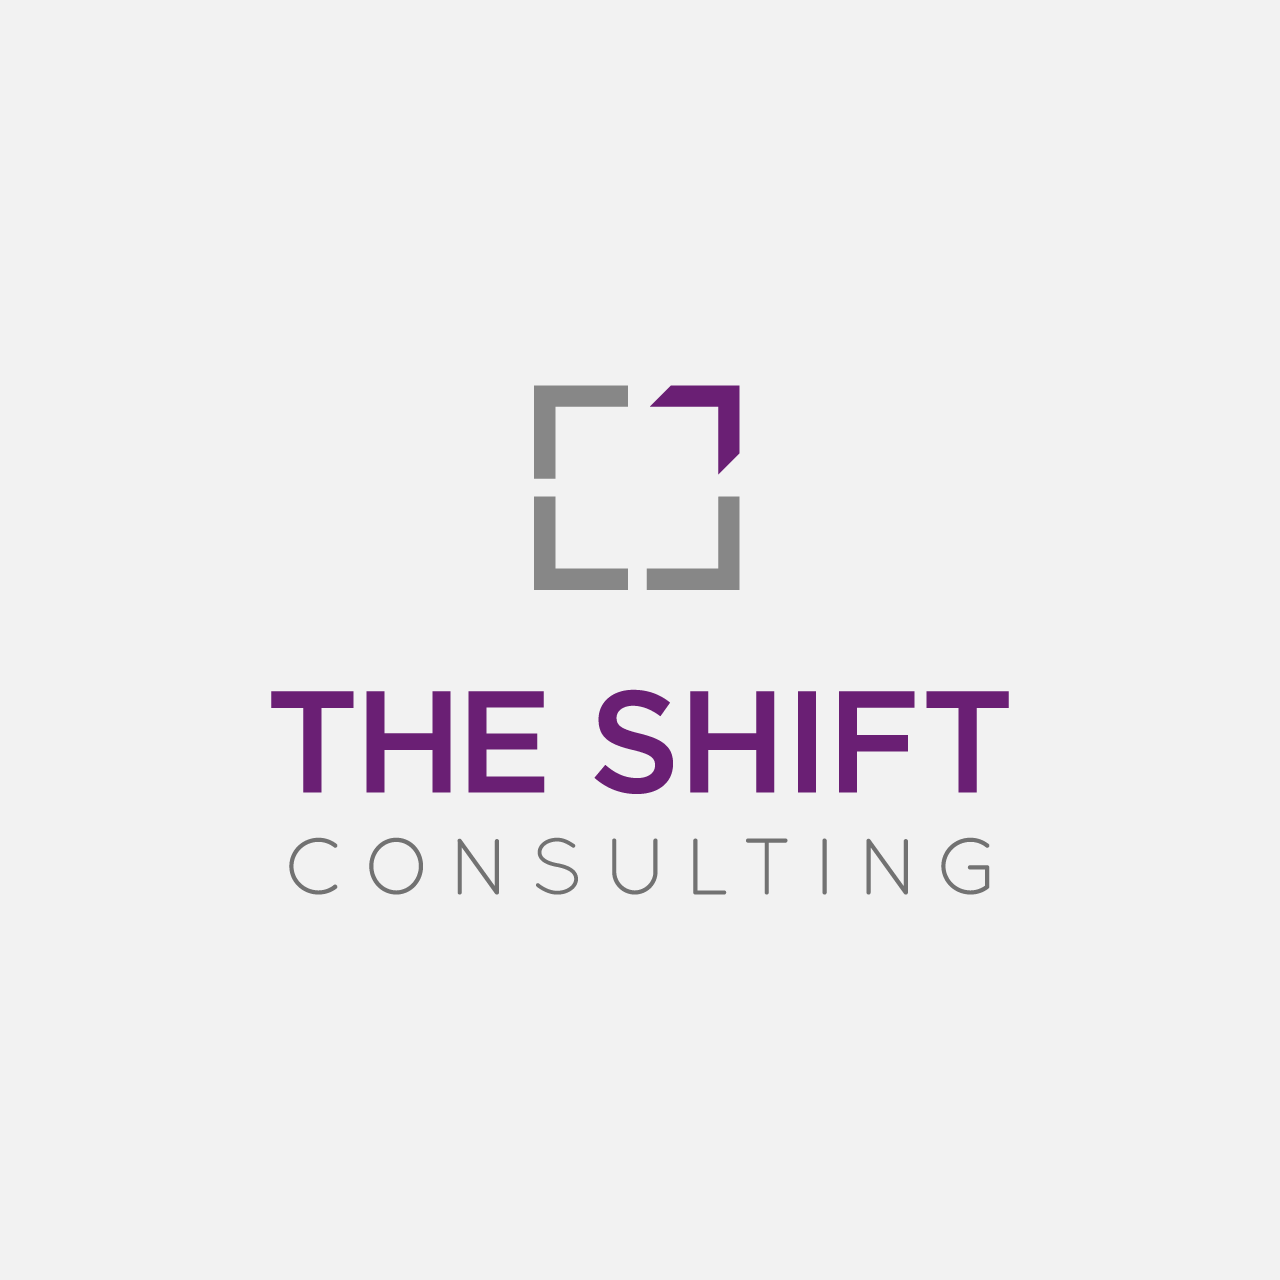 The_Shift_logo.png